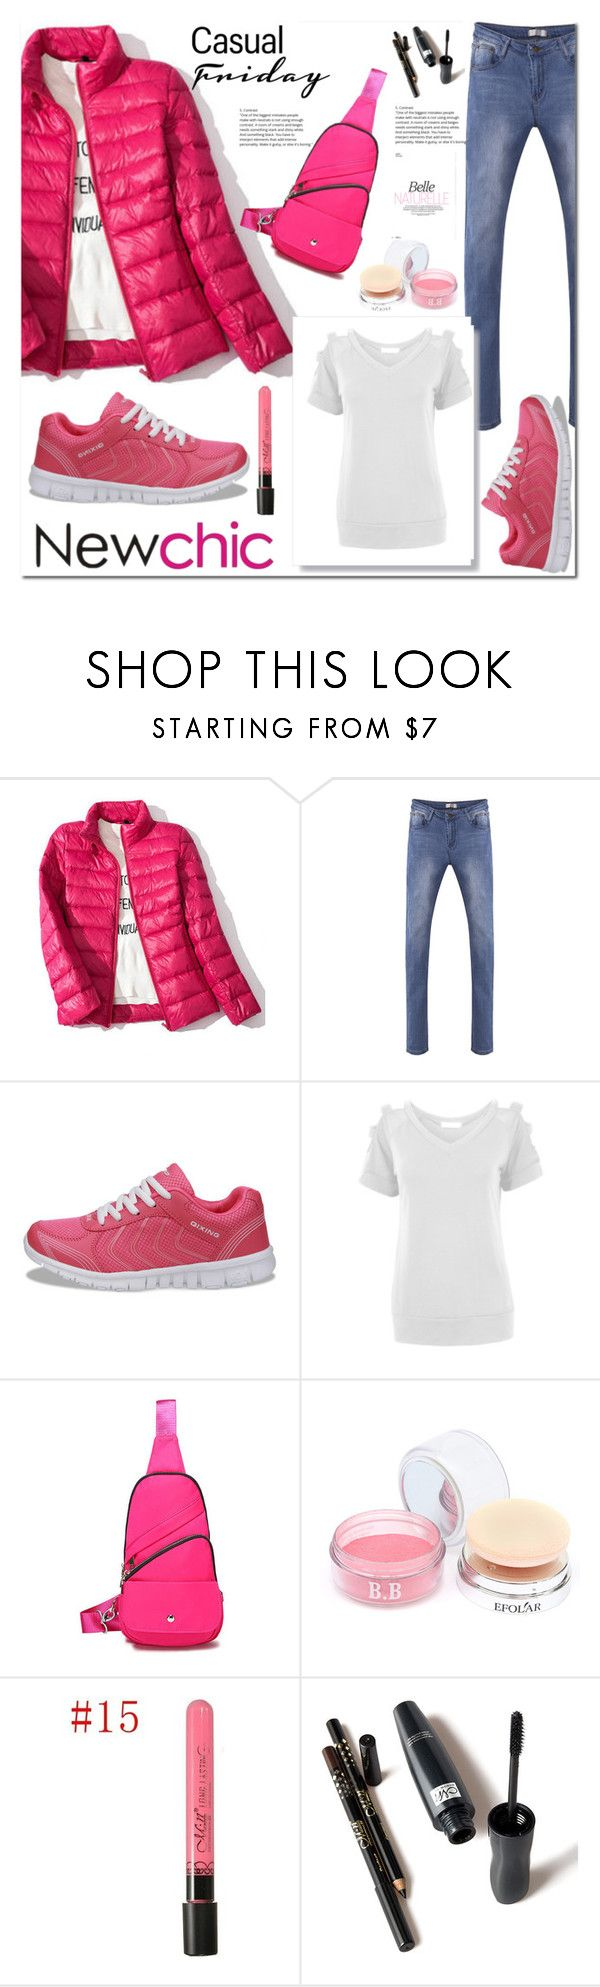 """""""Newchic"""" by erzifashion ❤ liked on Polyvore featuring ncfw"""